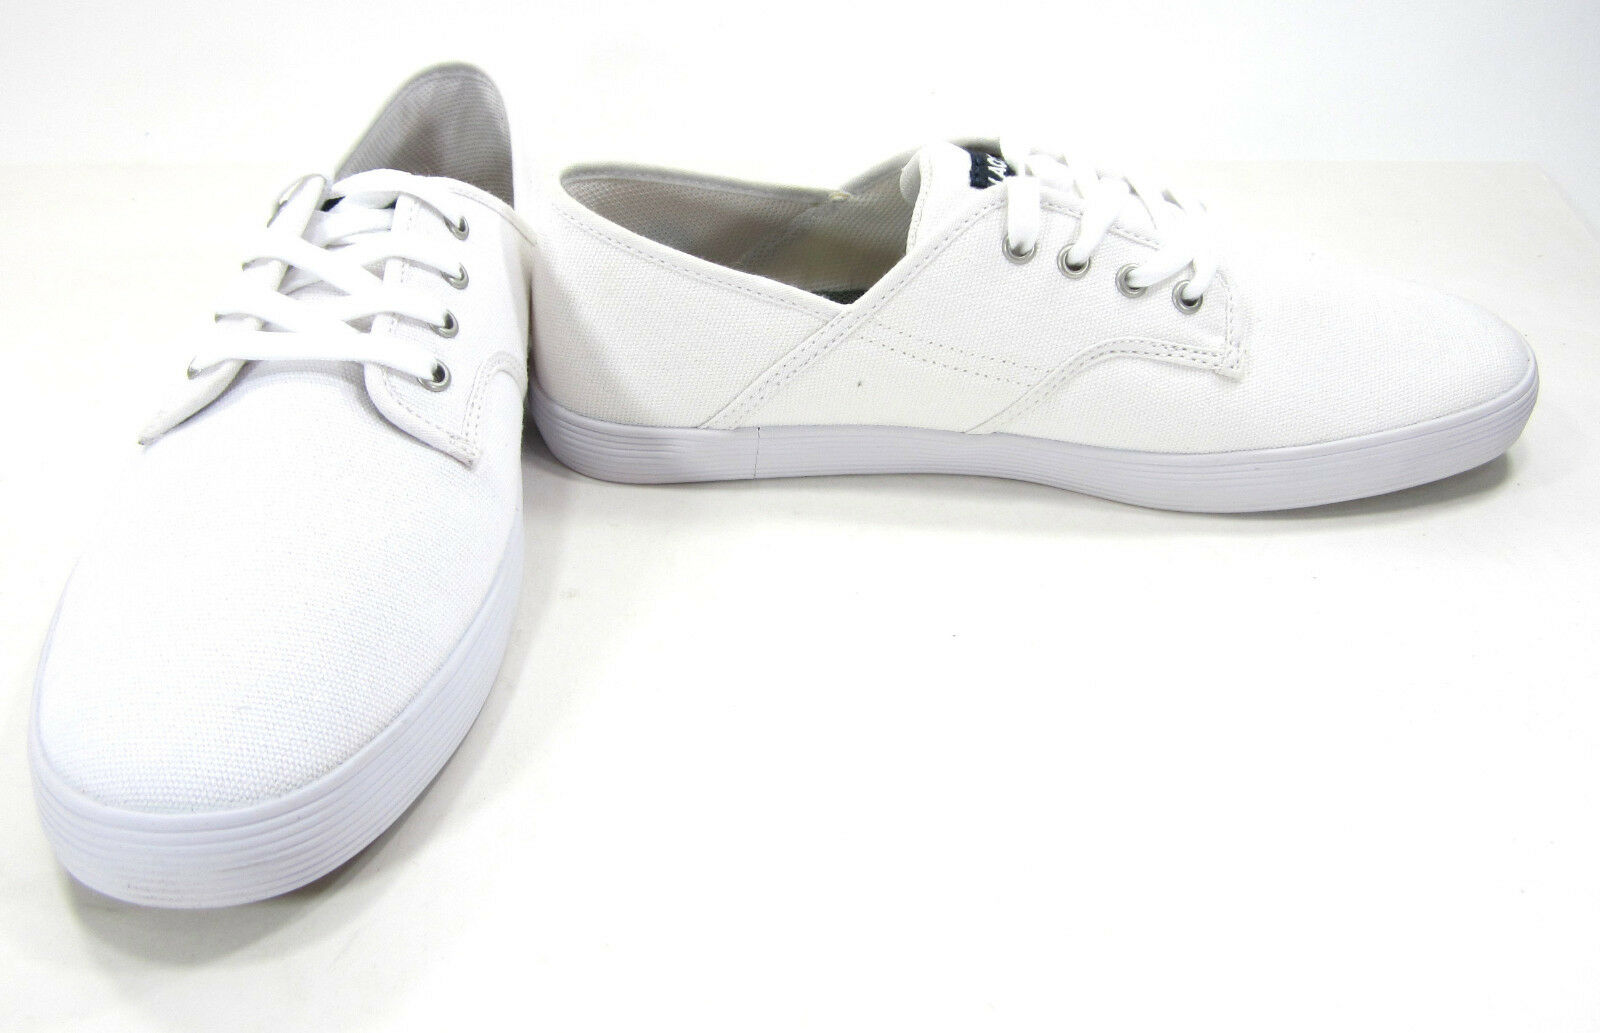 LaCoste Shoes Andover Canvas Lo White Sneakers Size 9